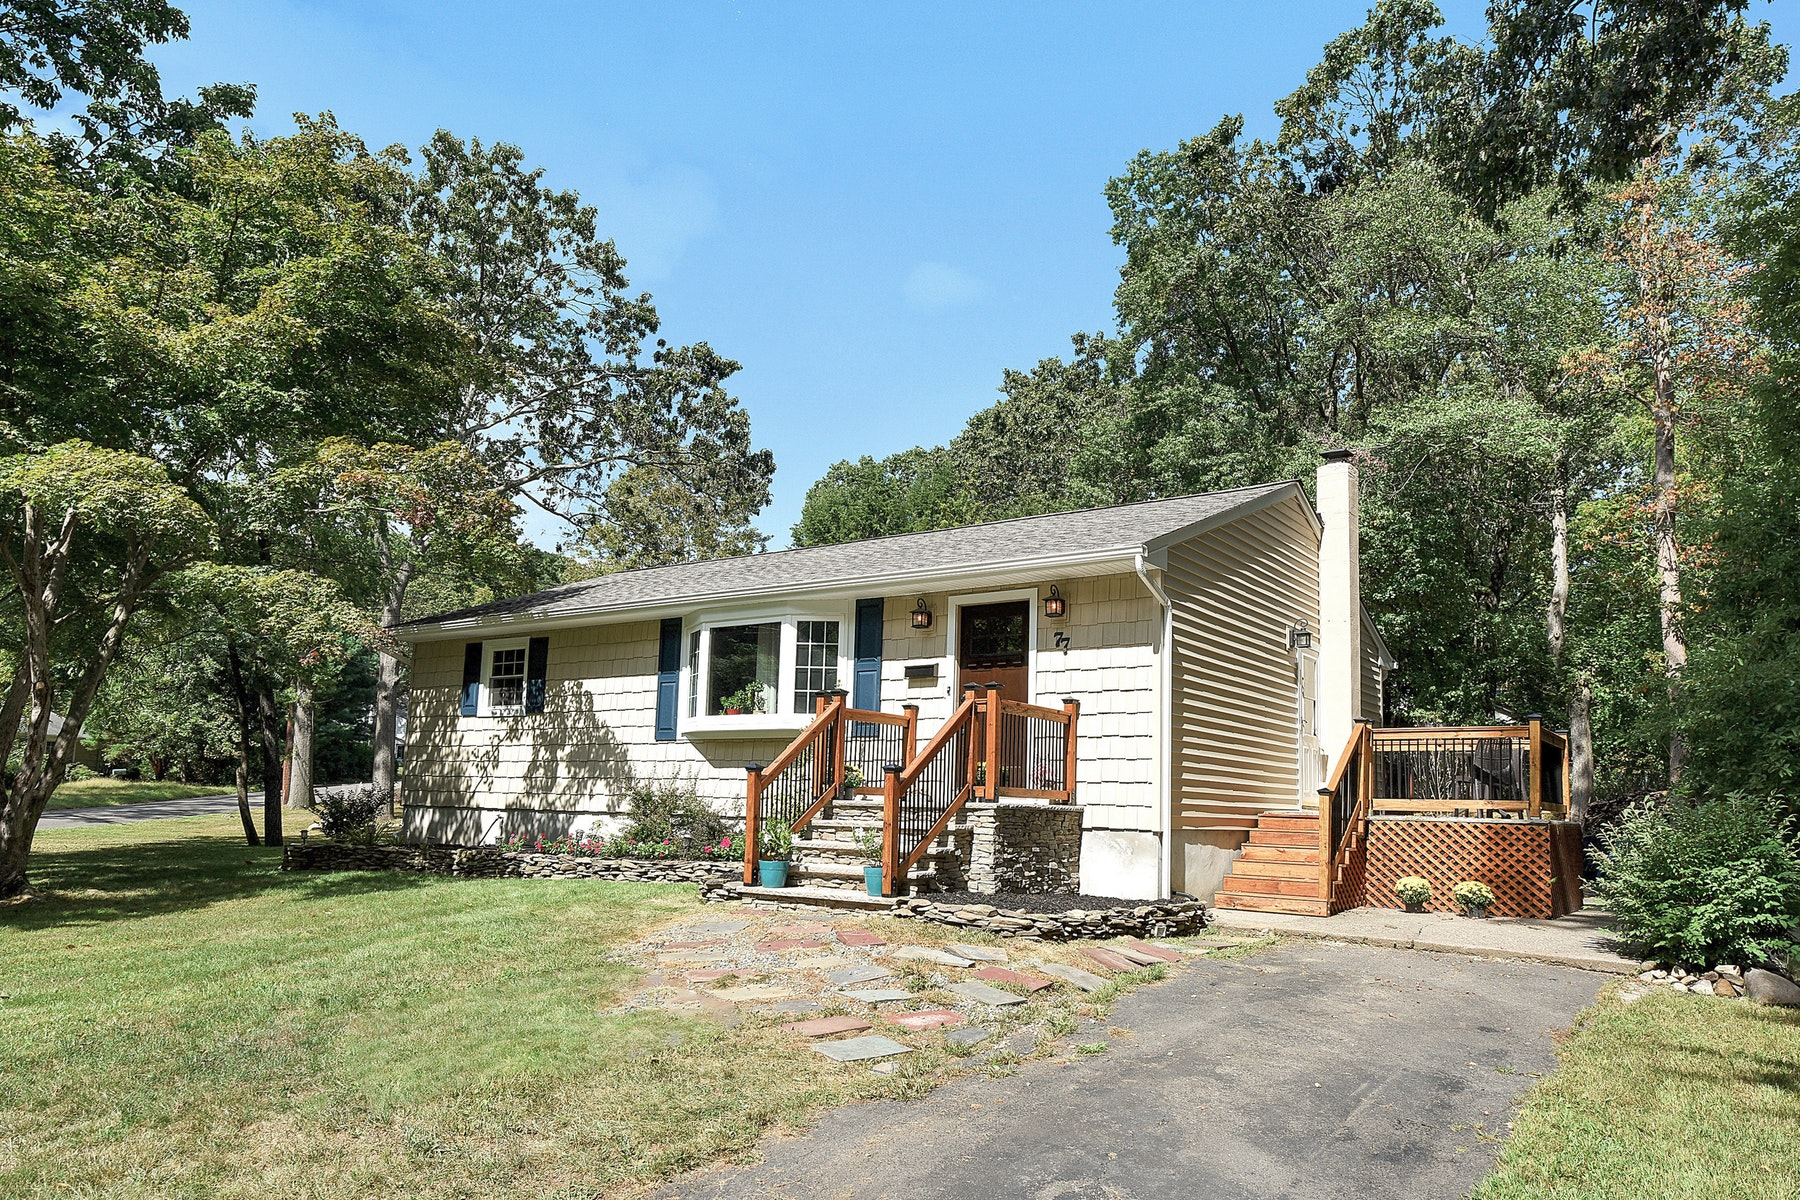 Single Family Homes for Active at Picture Perfect Ranch 77 Roosevelt Blvd Oakland, New Jersey 07436 United States